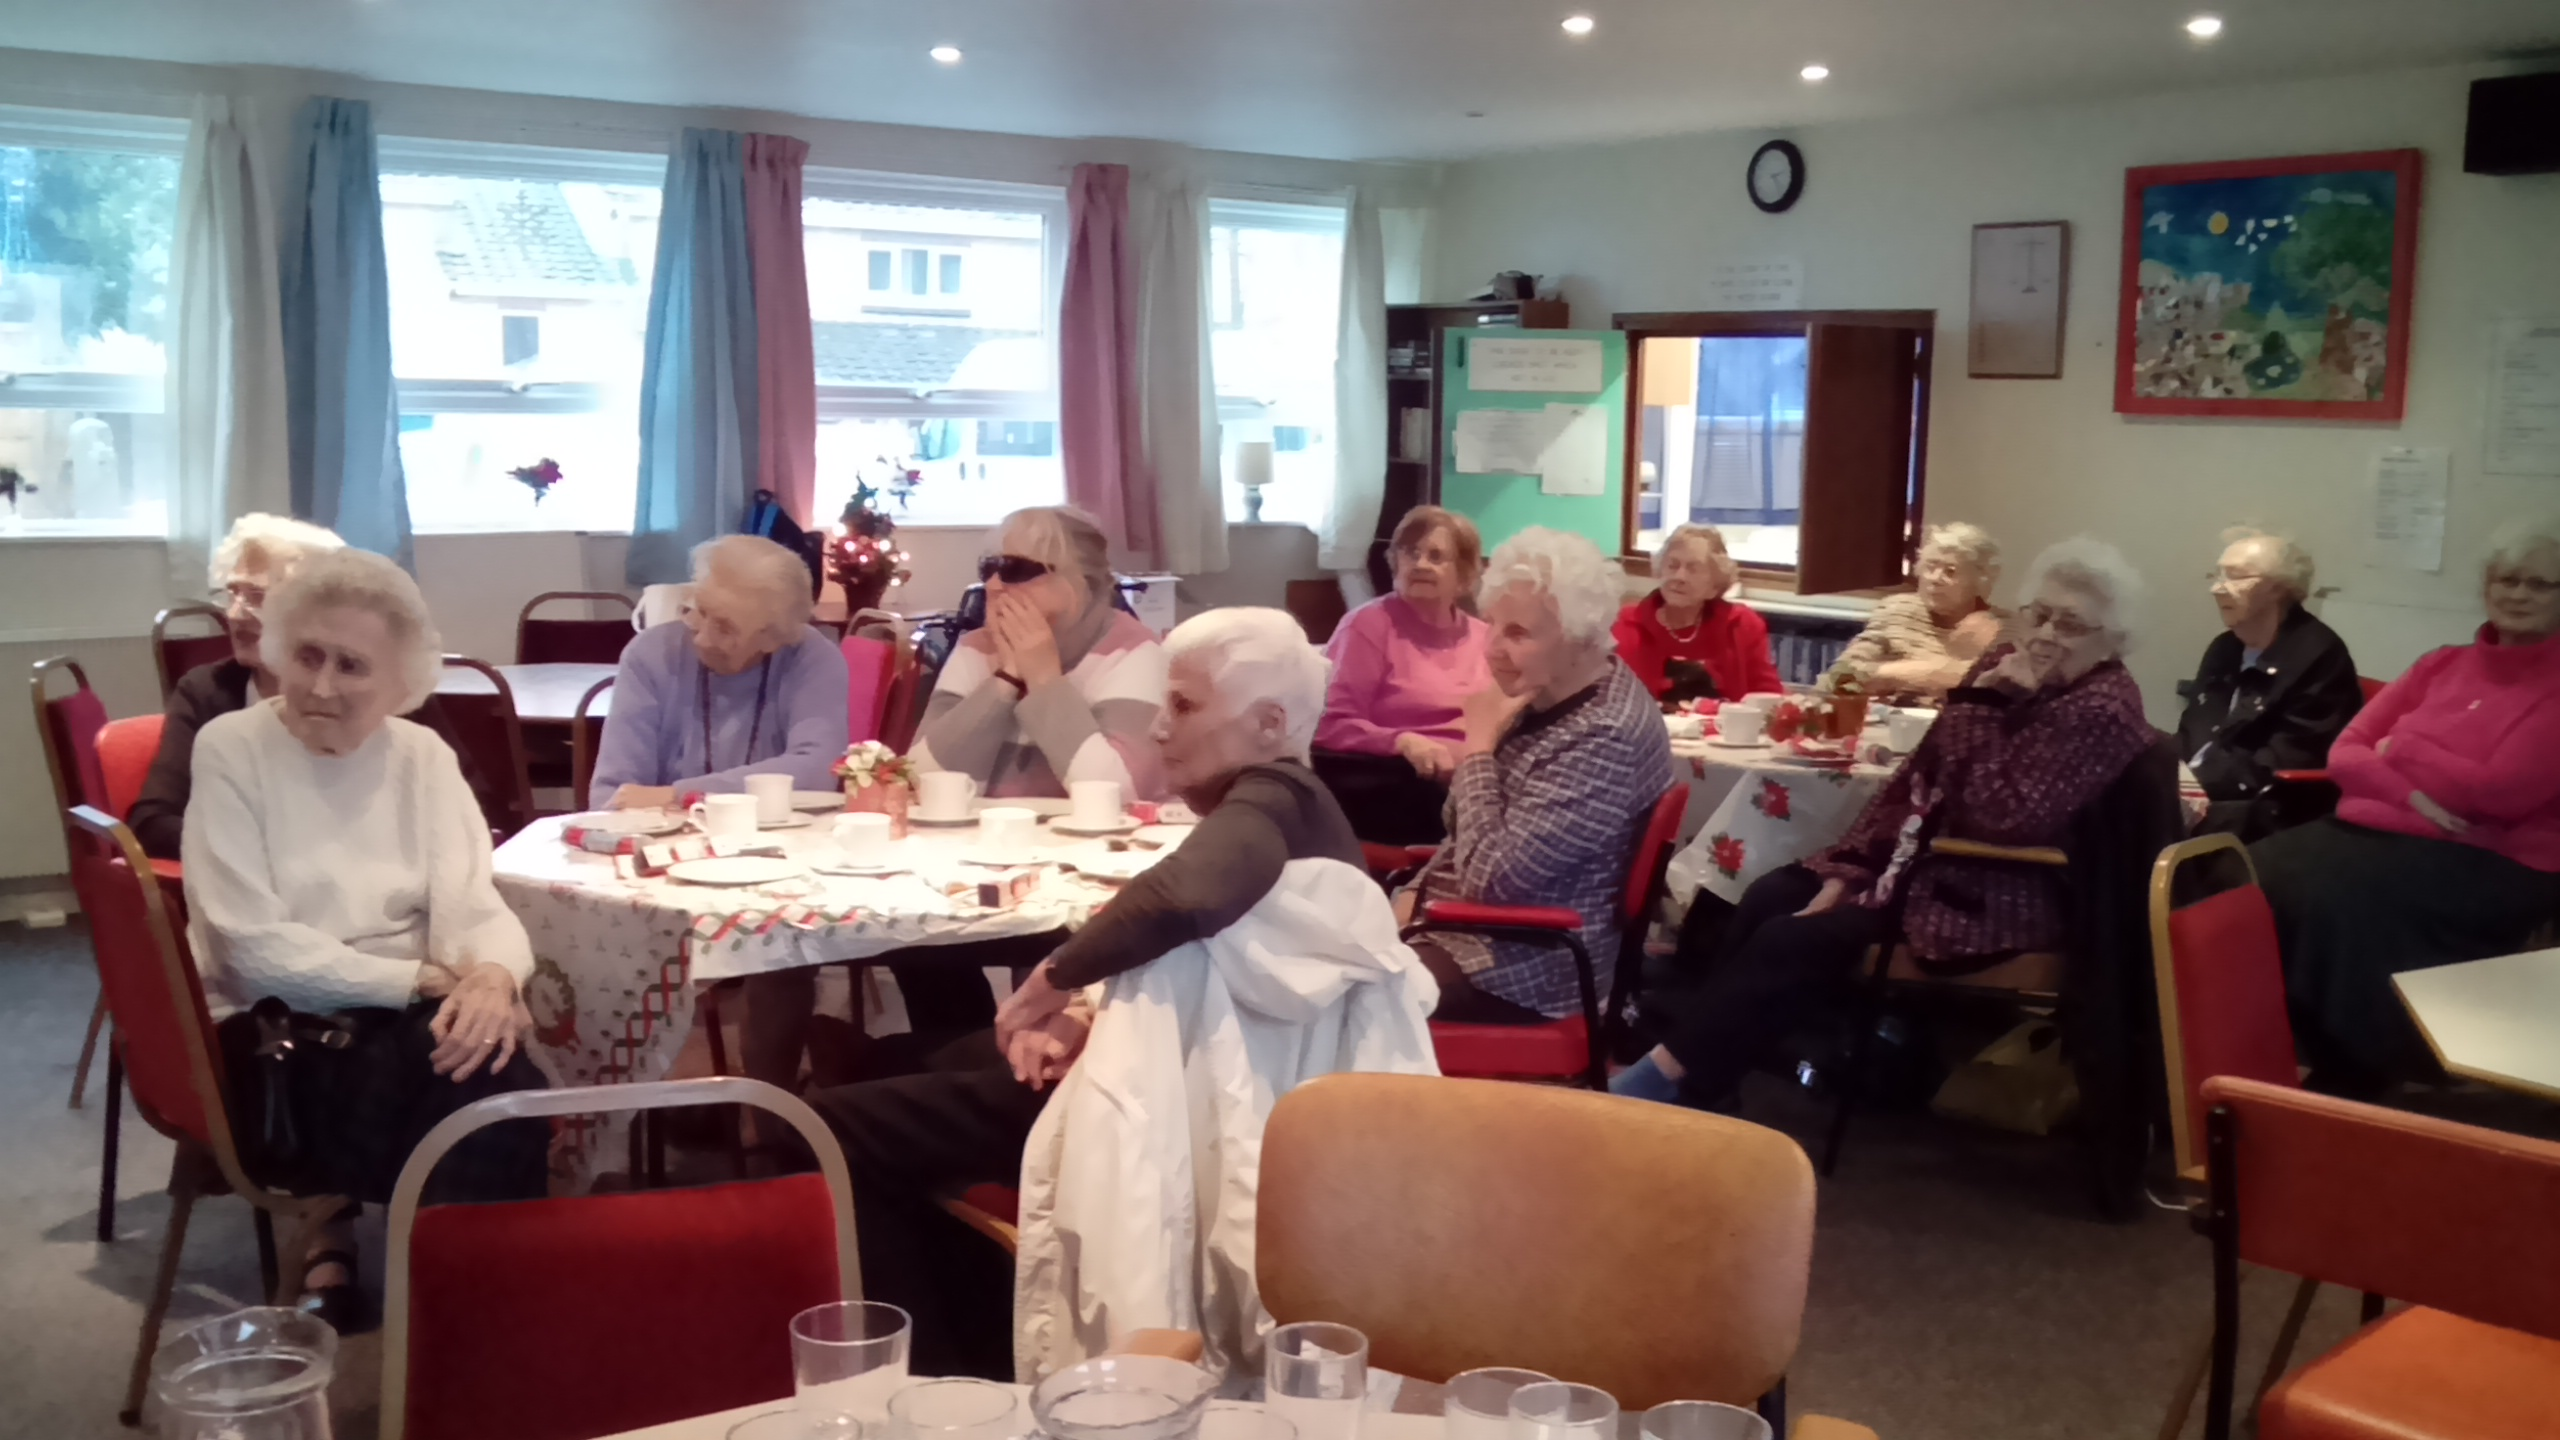 wellington partially sighted group in the WHERE Active Living Centre in Wellington Somerset